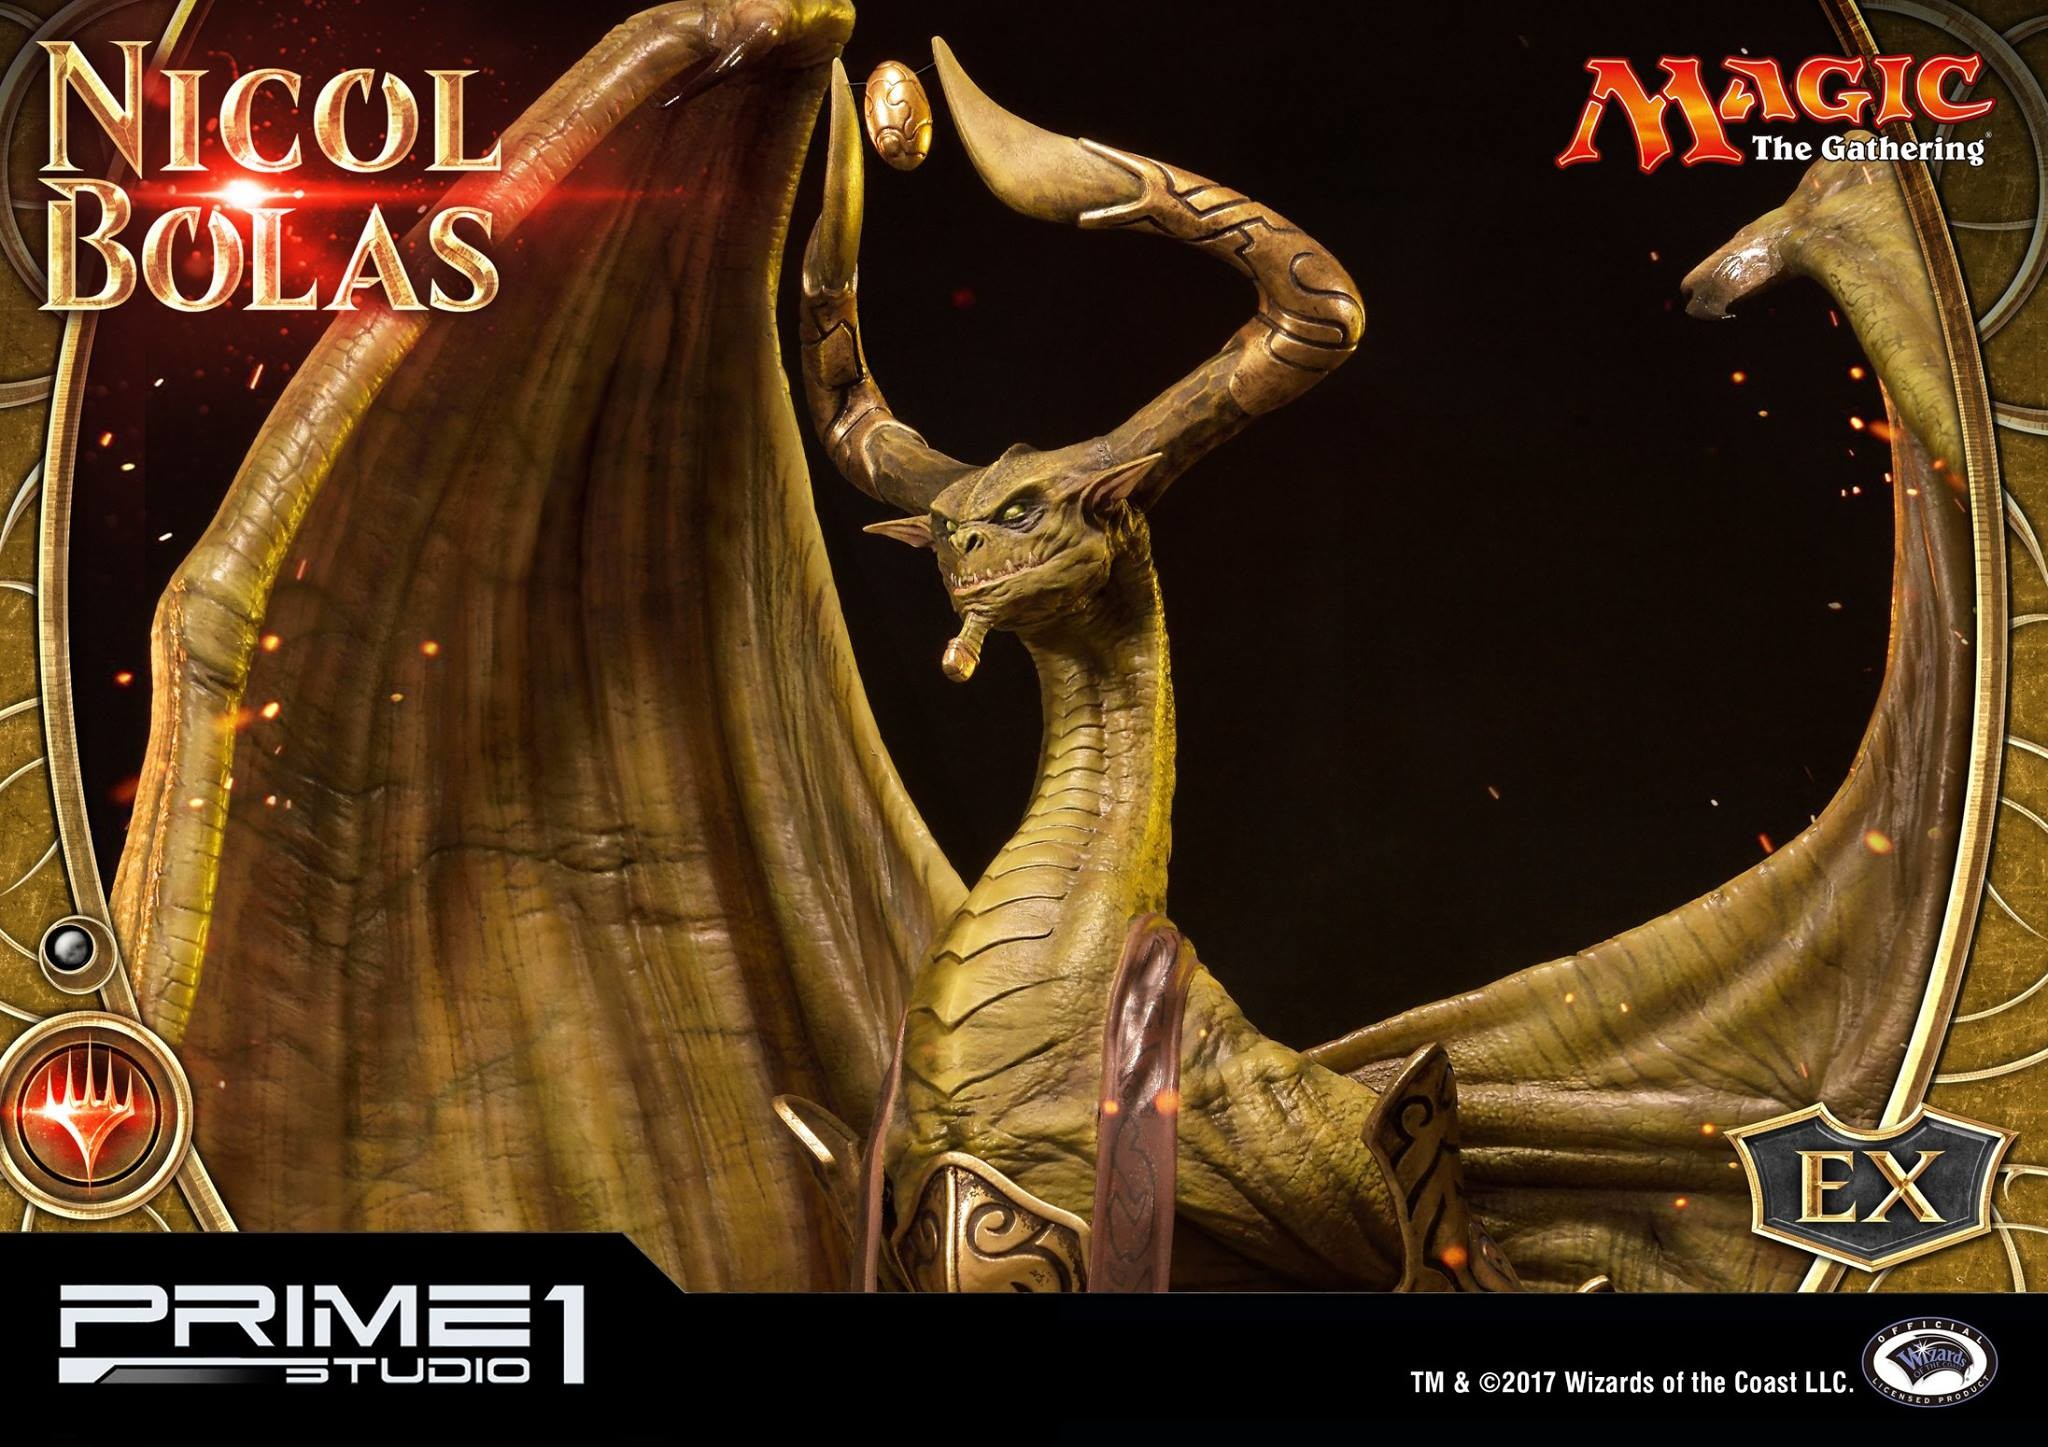 prime_1_studio magic:_the_gathering nicol_bolas